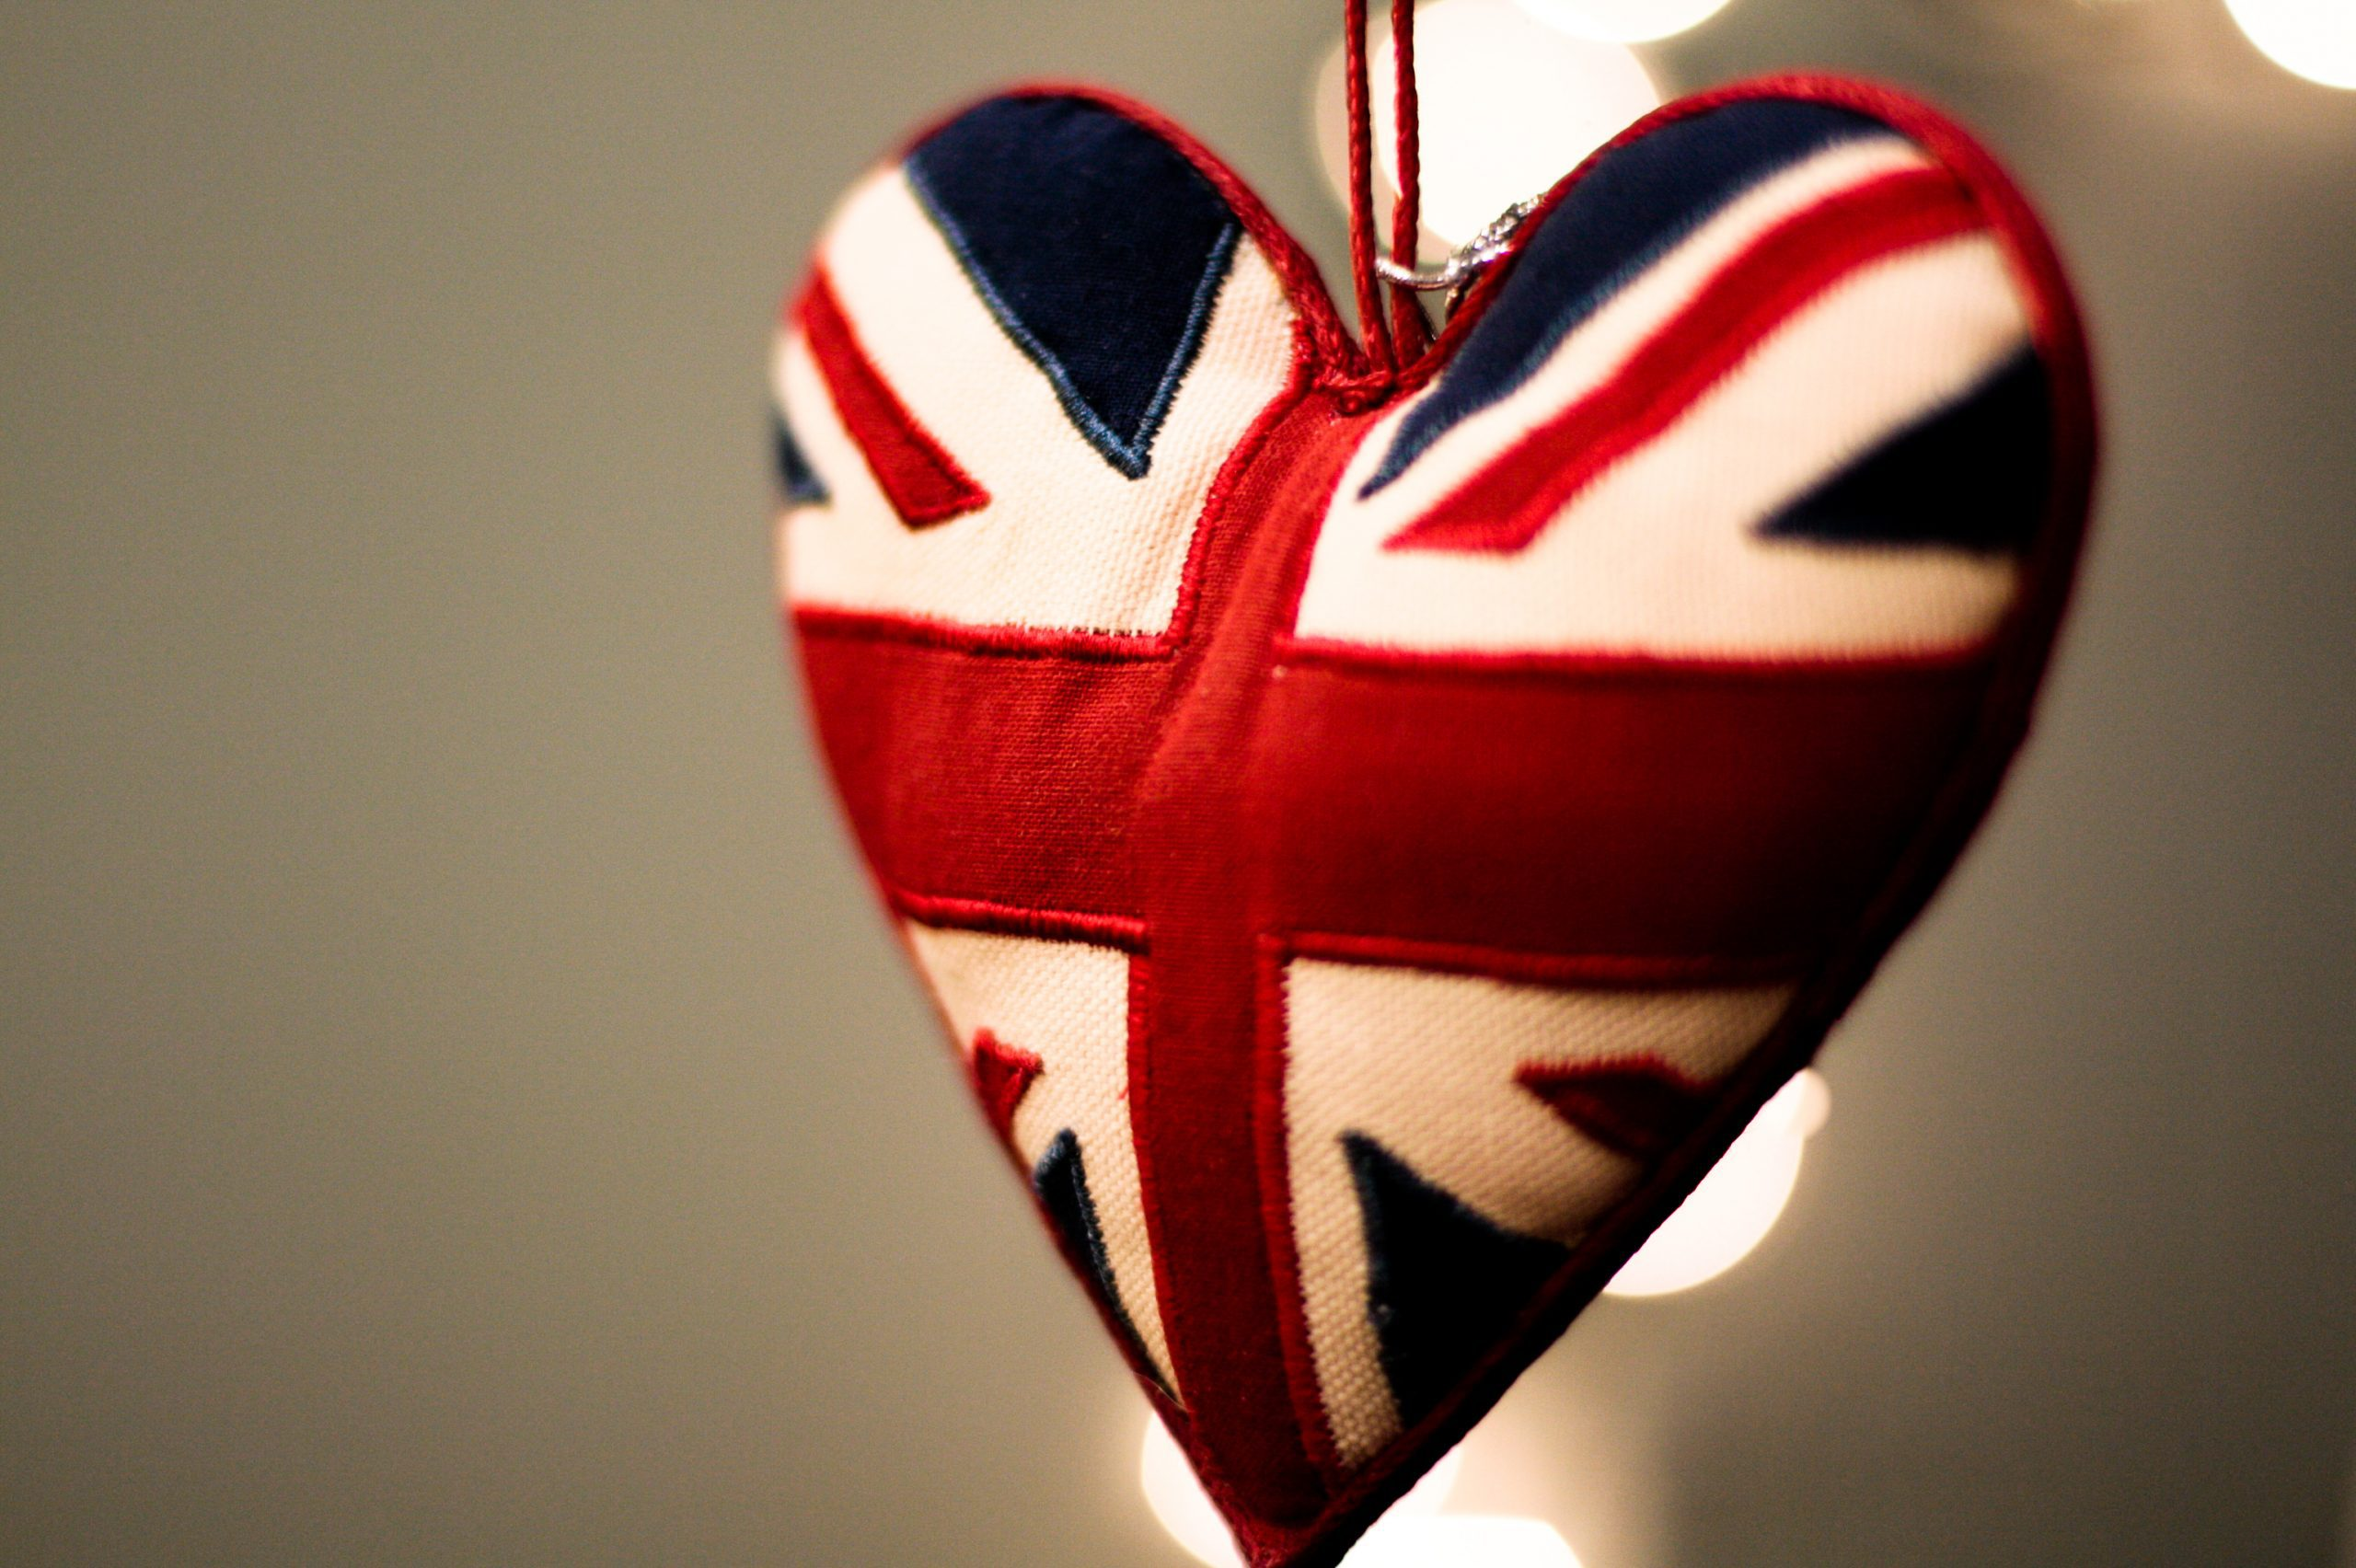 The heart-shaped Union Jack